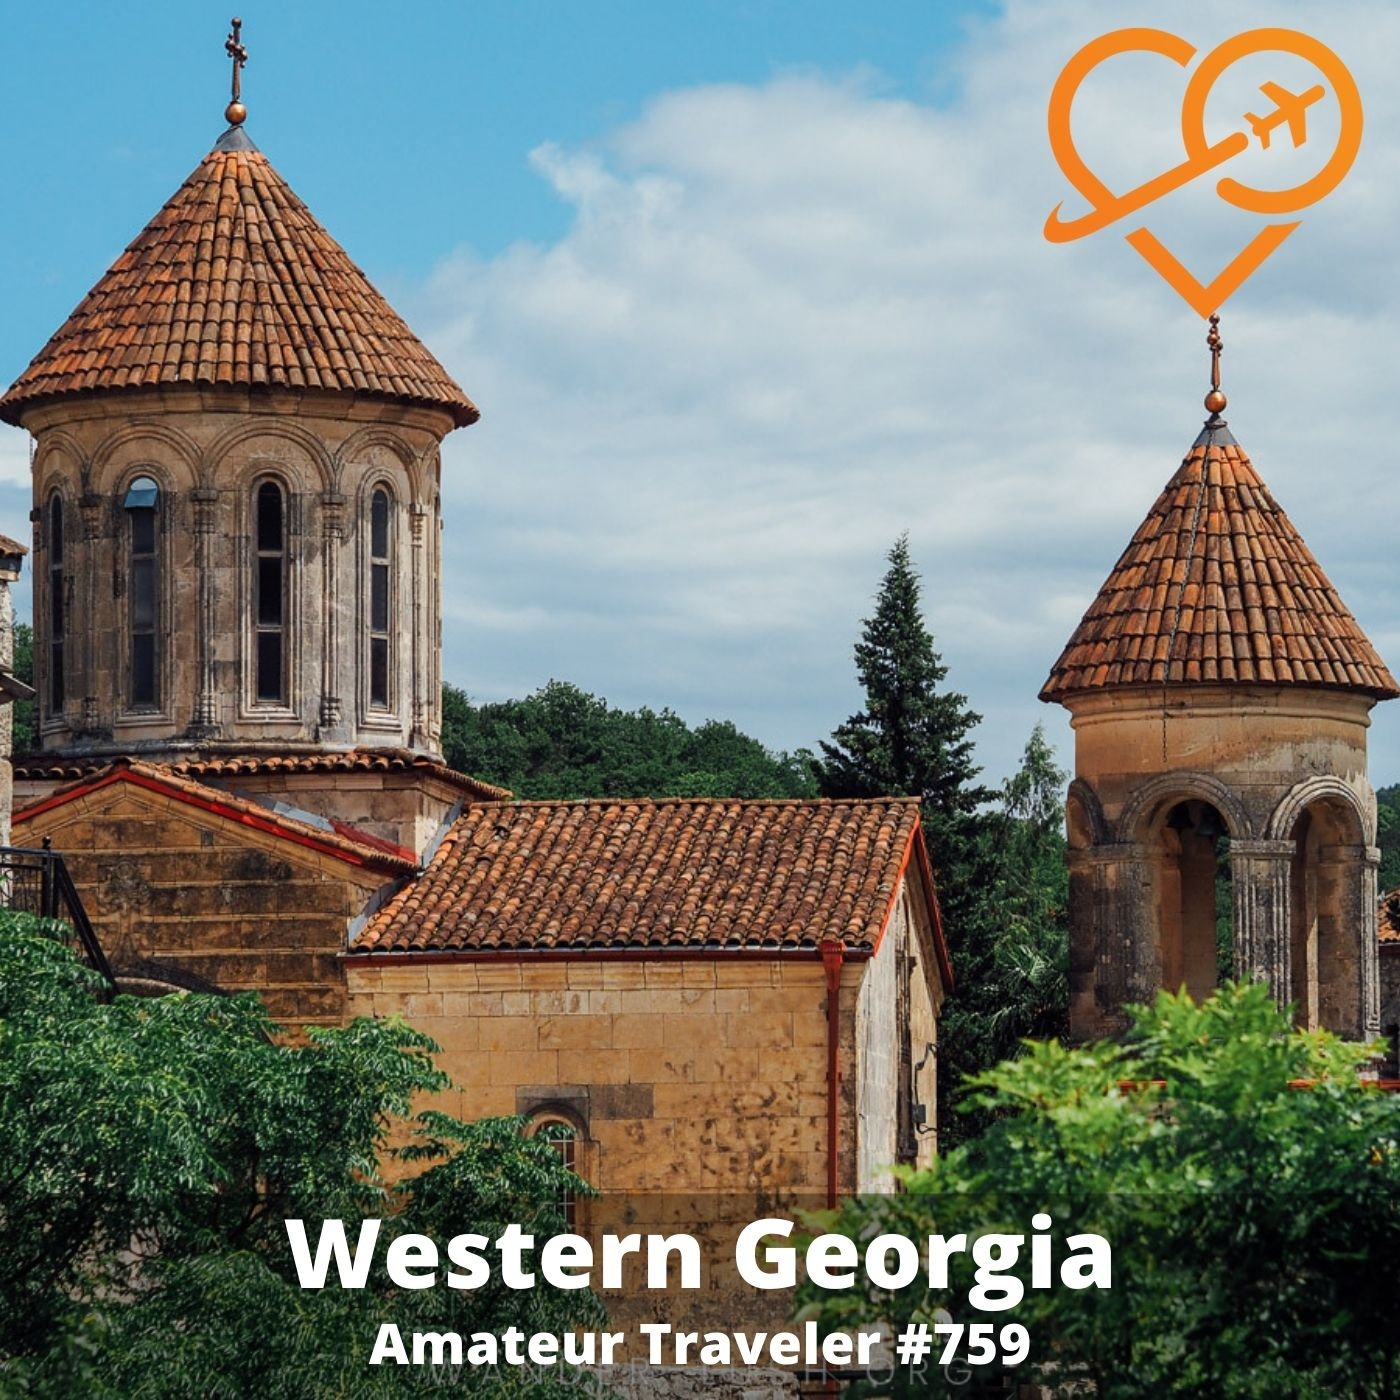 AT$759 - Travel to Western Georgia (the country)